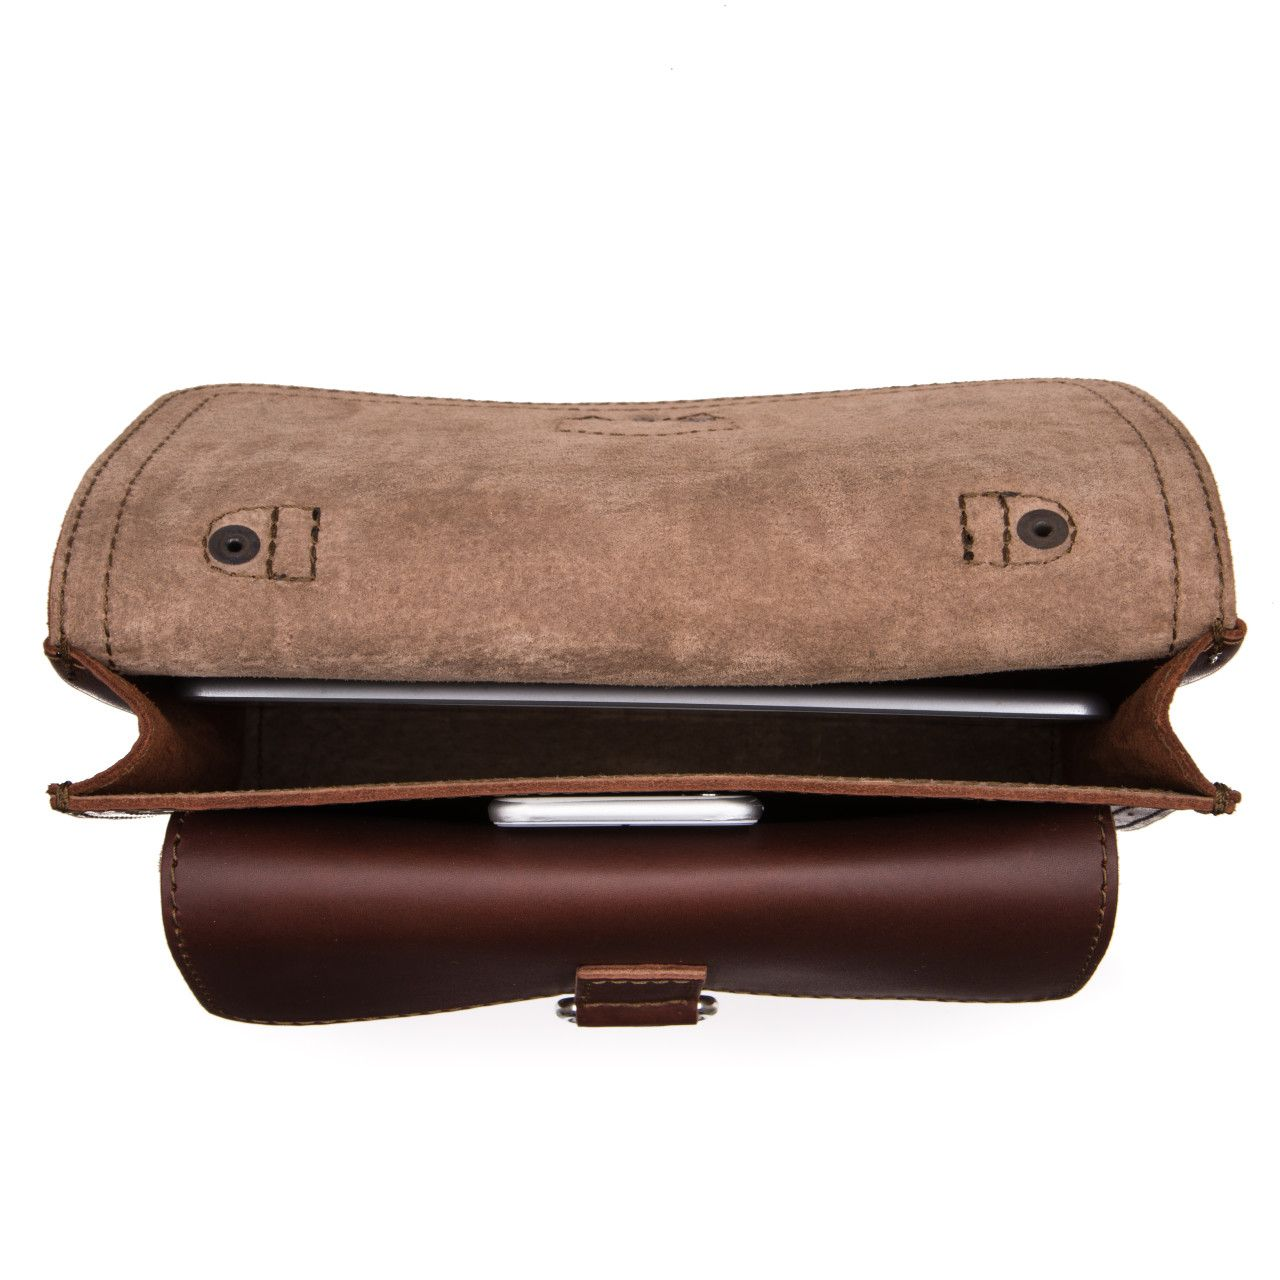 Macbook and iphone in the inside of the leather tablet messenger bag in chestnut leather